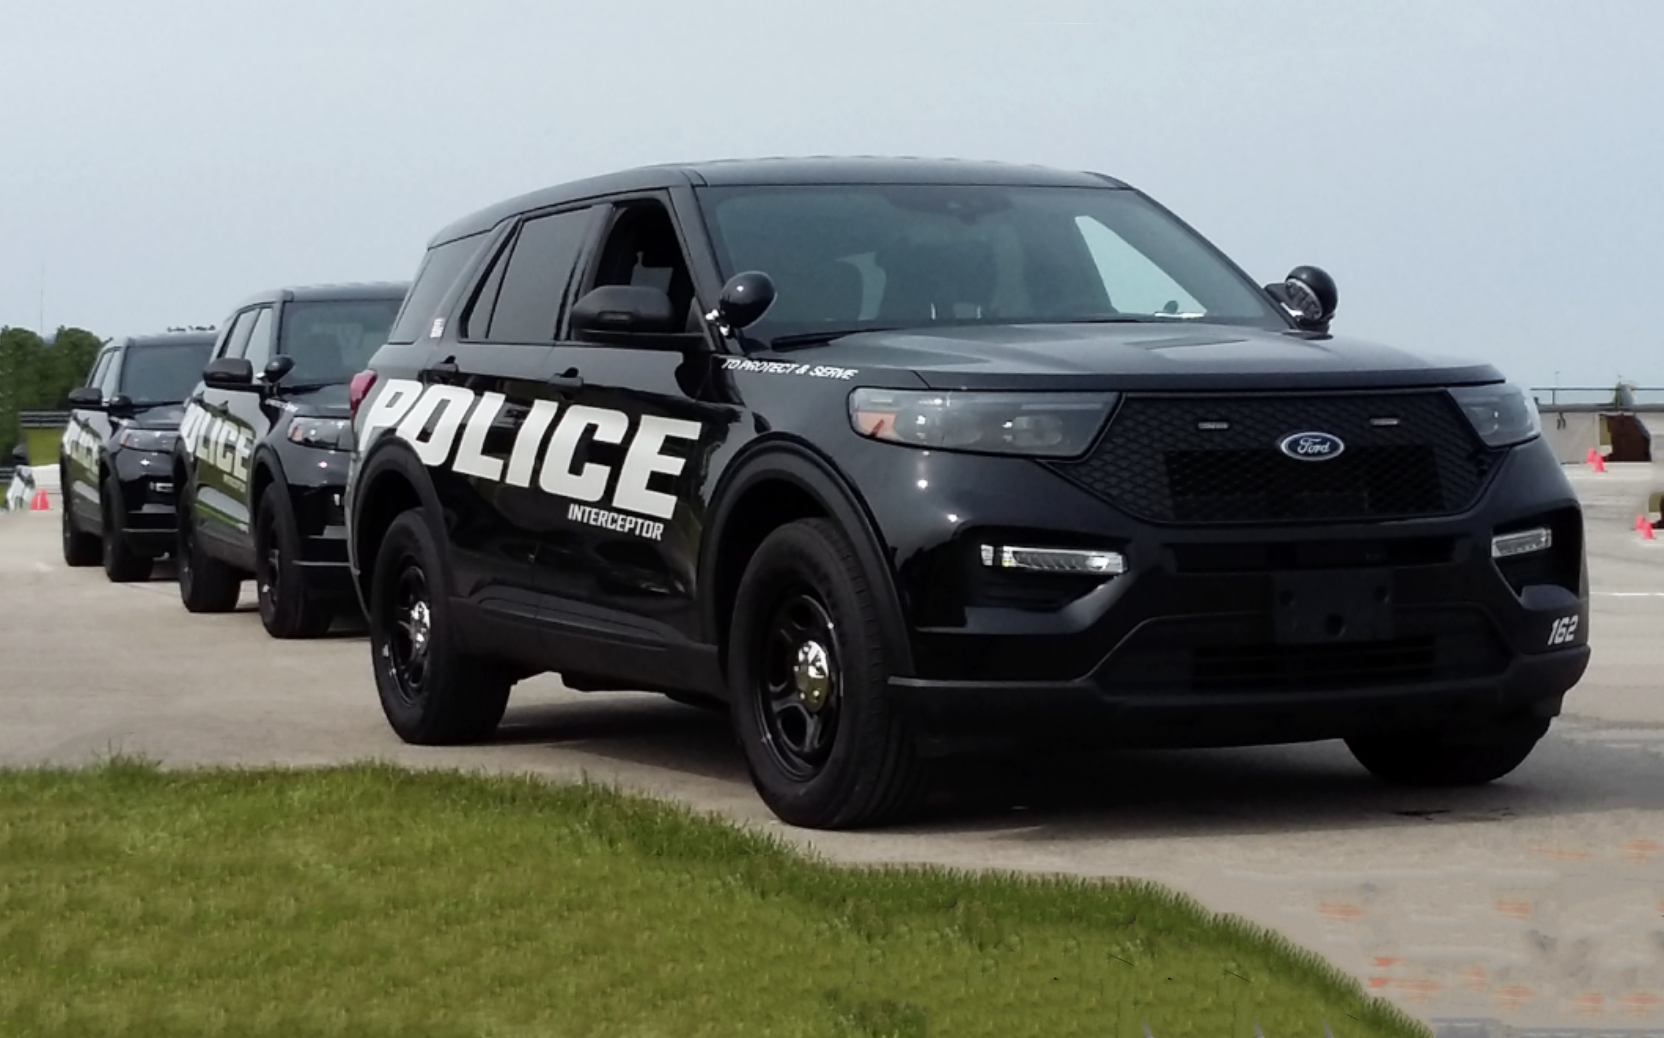 2020 Ford Explorer Police Interceptor The Daily Drive ...